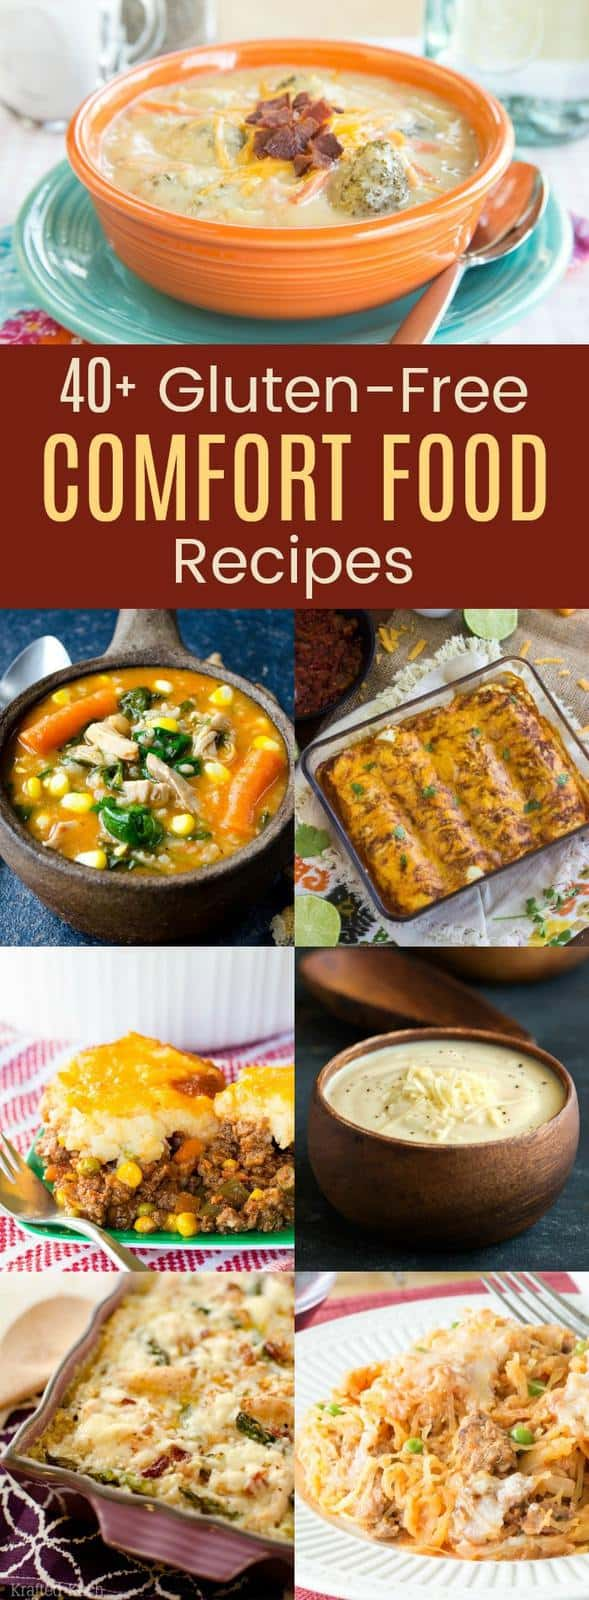 40 gluten free comfort food recipes cupcakes kale chips over 40 gluten free comfort food recipes casseroles skillets soups stews forumfinder Gallery